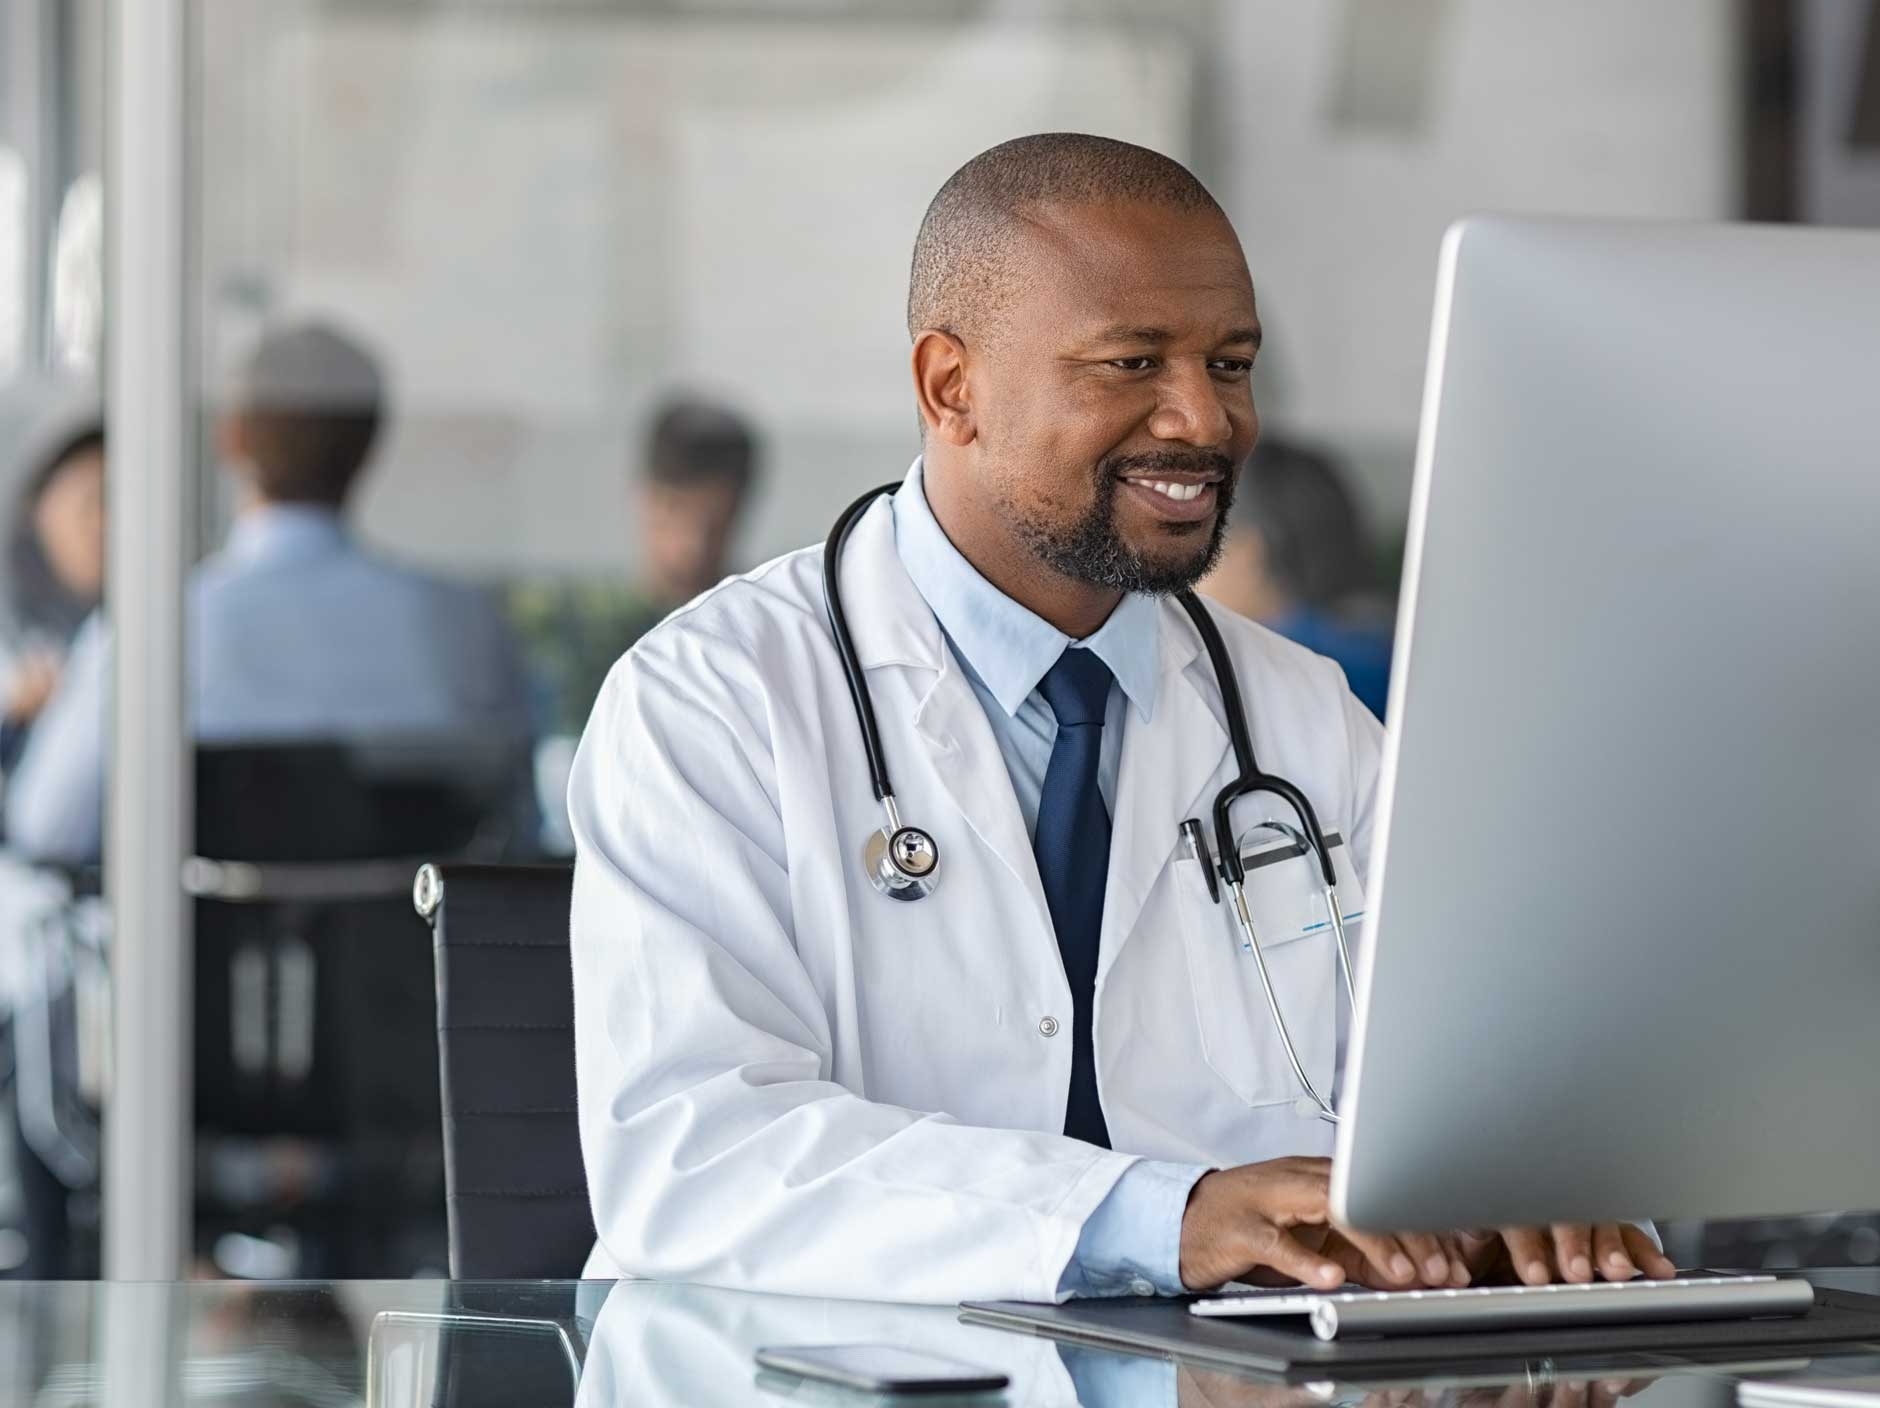 A doctor sitting at a desk, using a computer